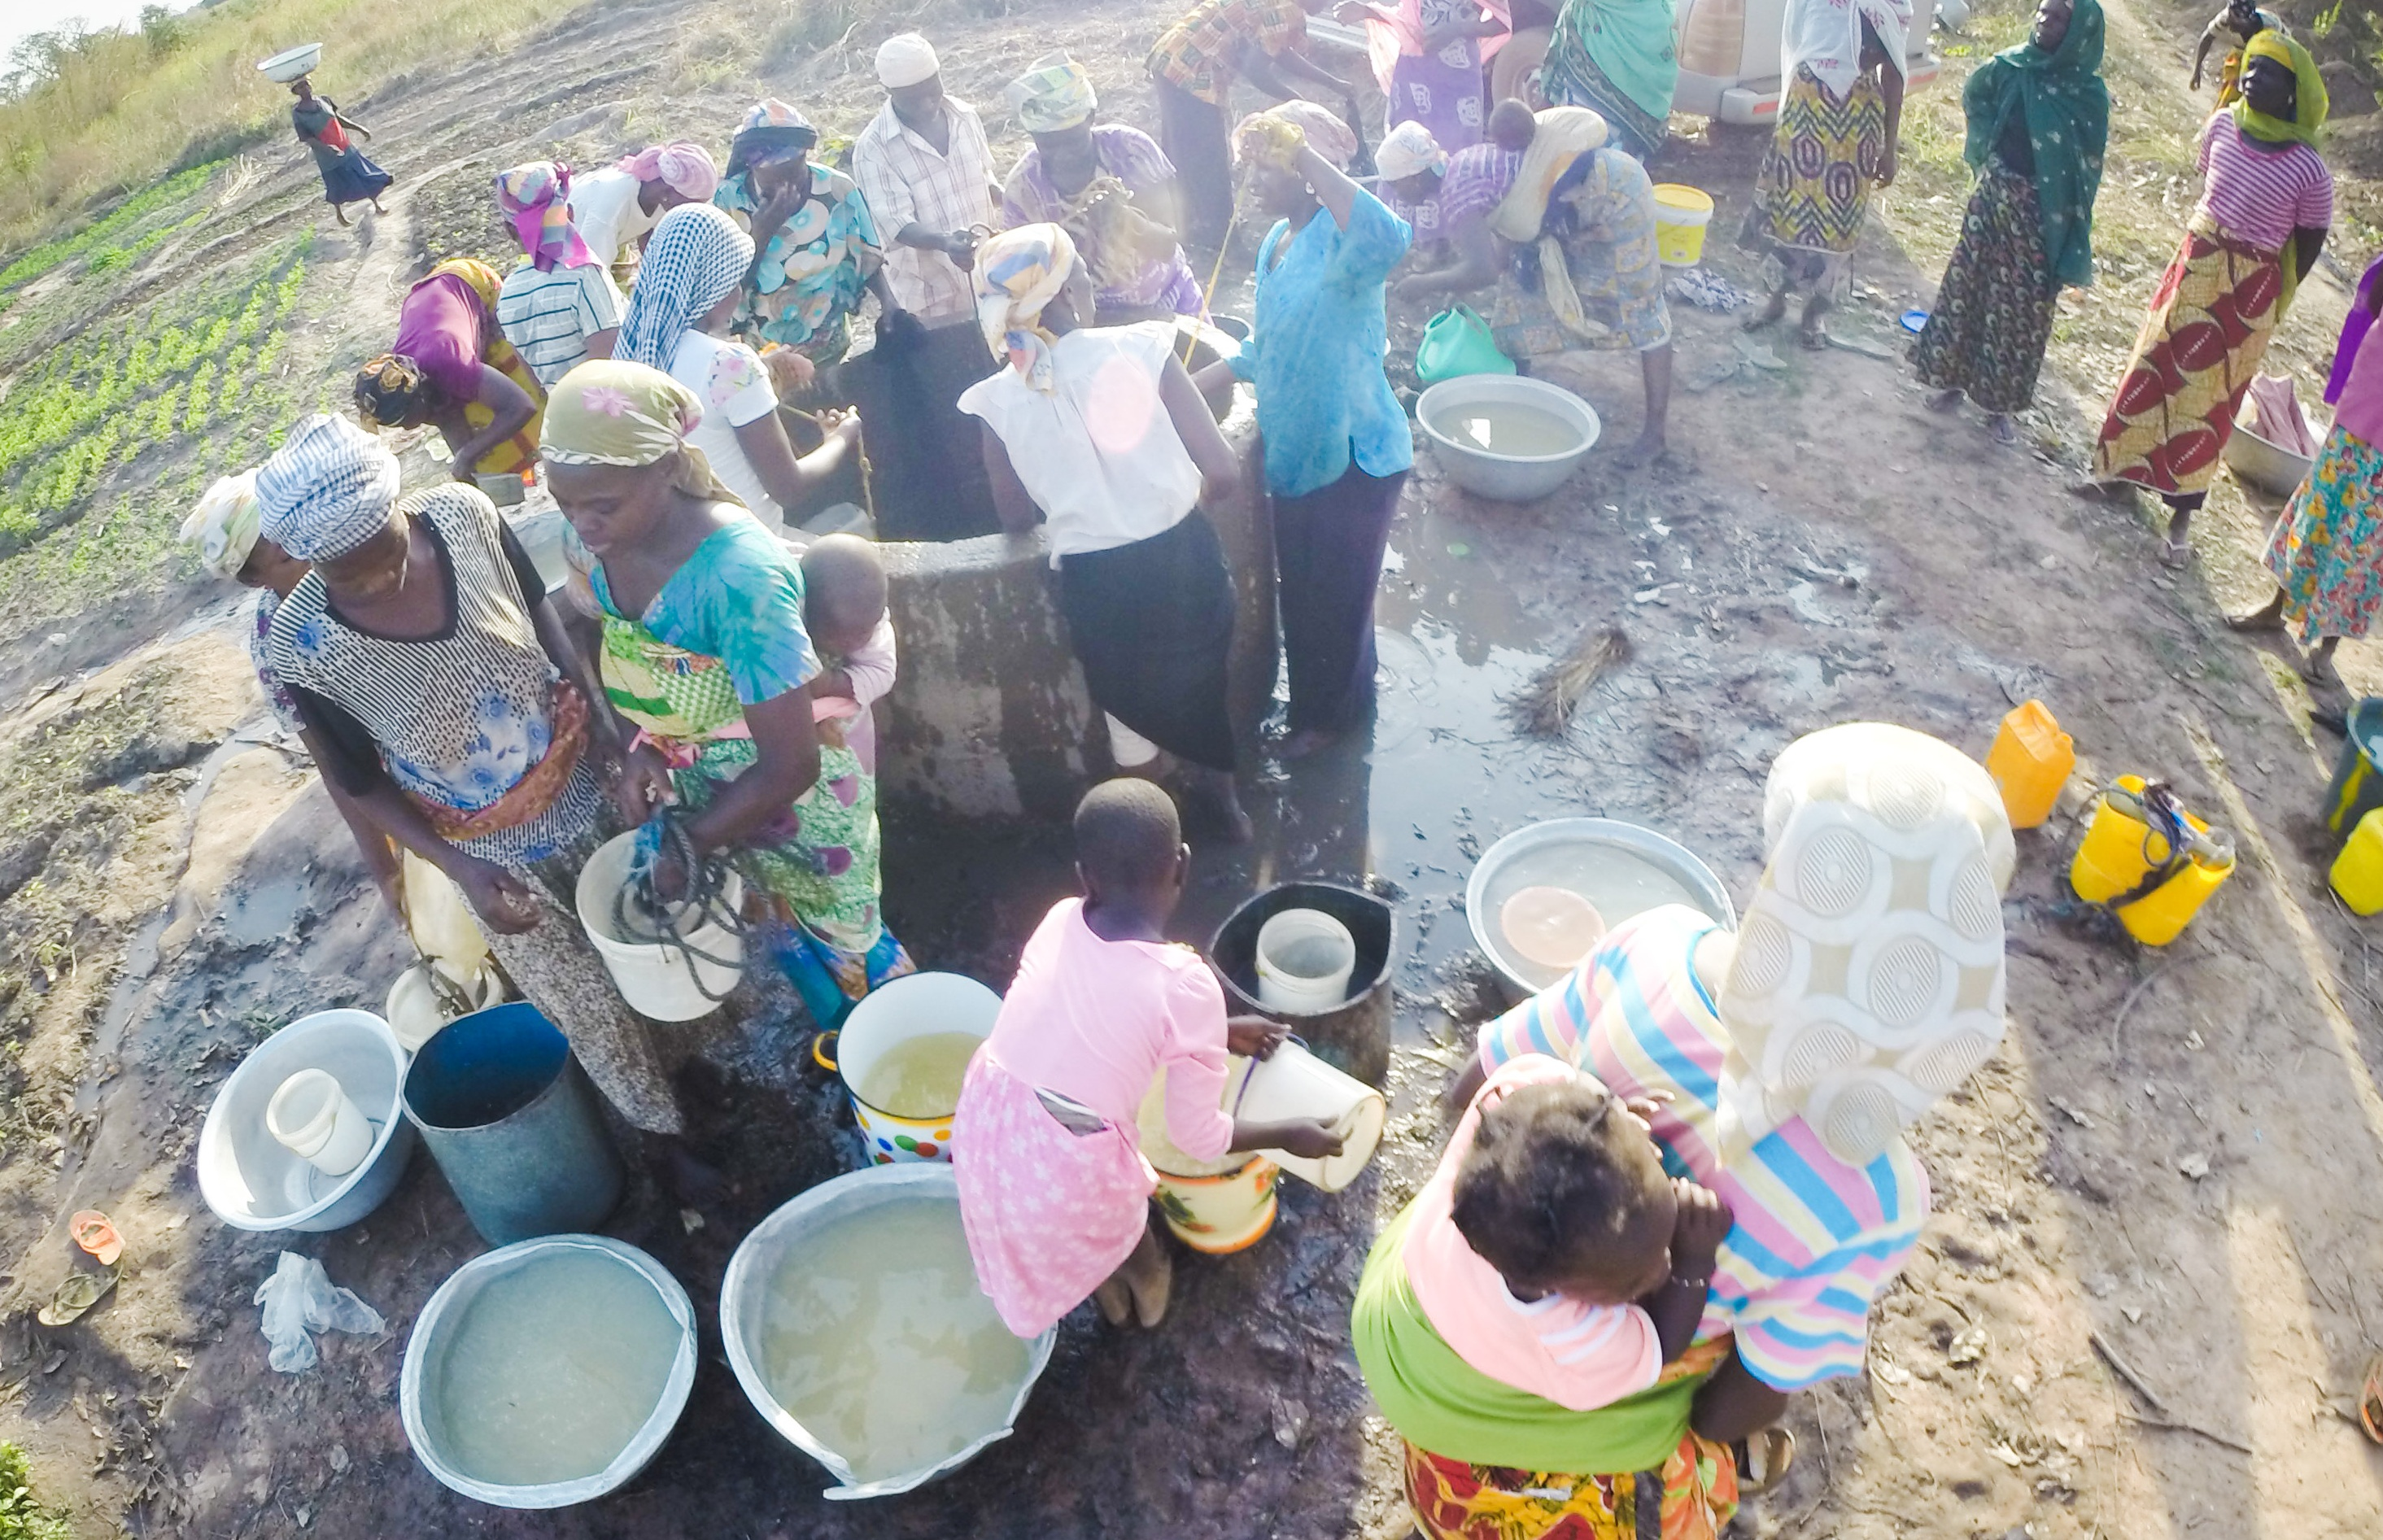 Women work together to collect water from a well for their community in northern Ghana.